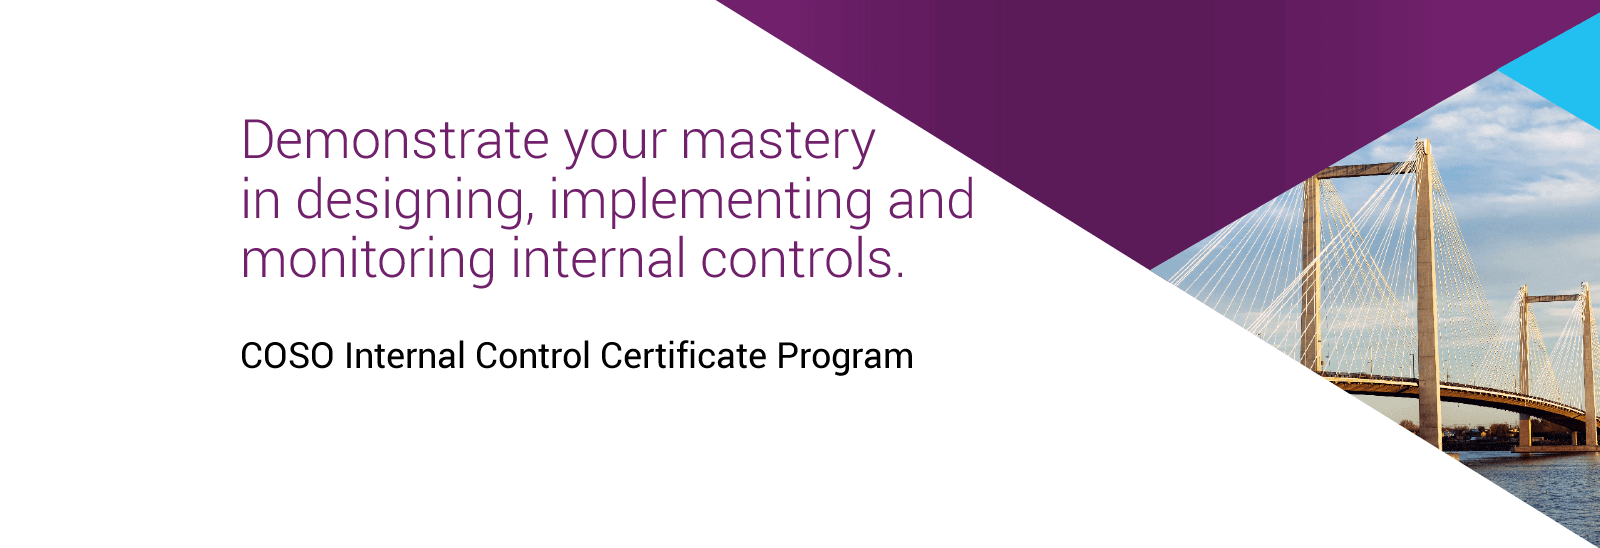 Coso Internal Control Certificate Program Aicpa Certificates